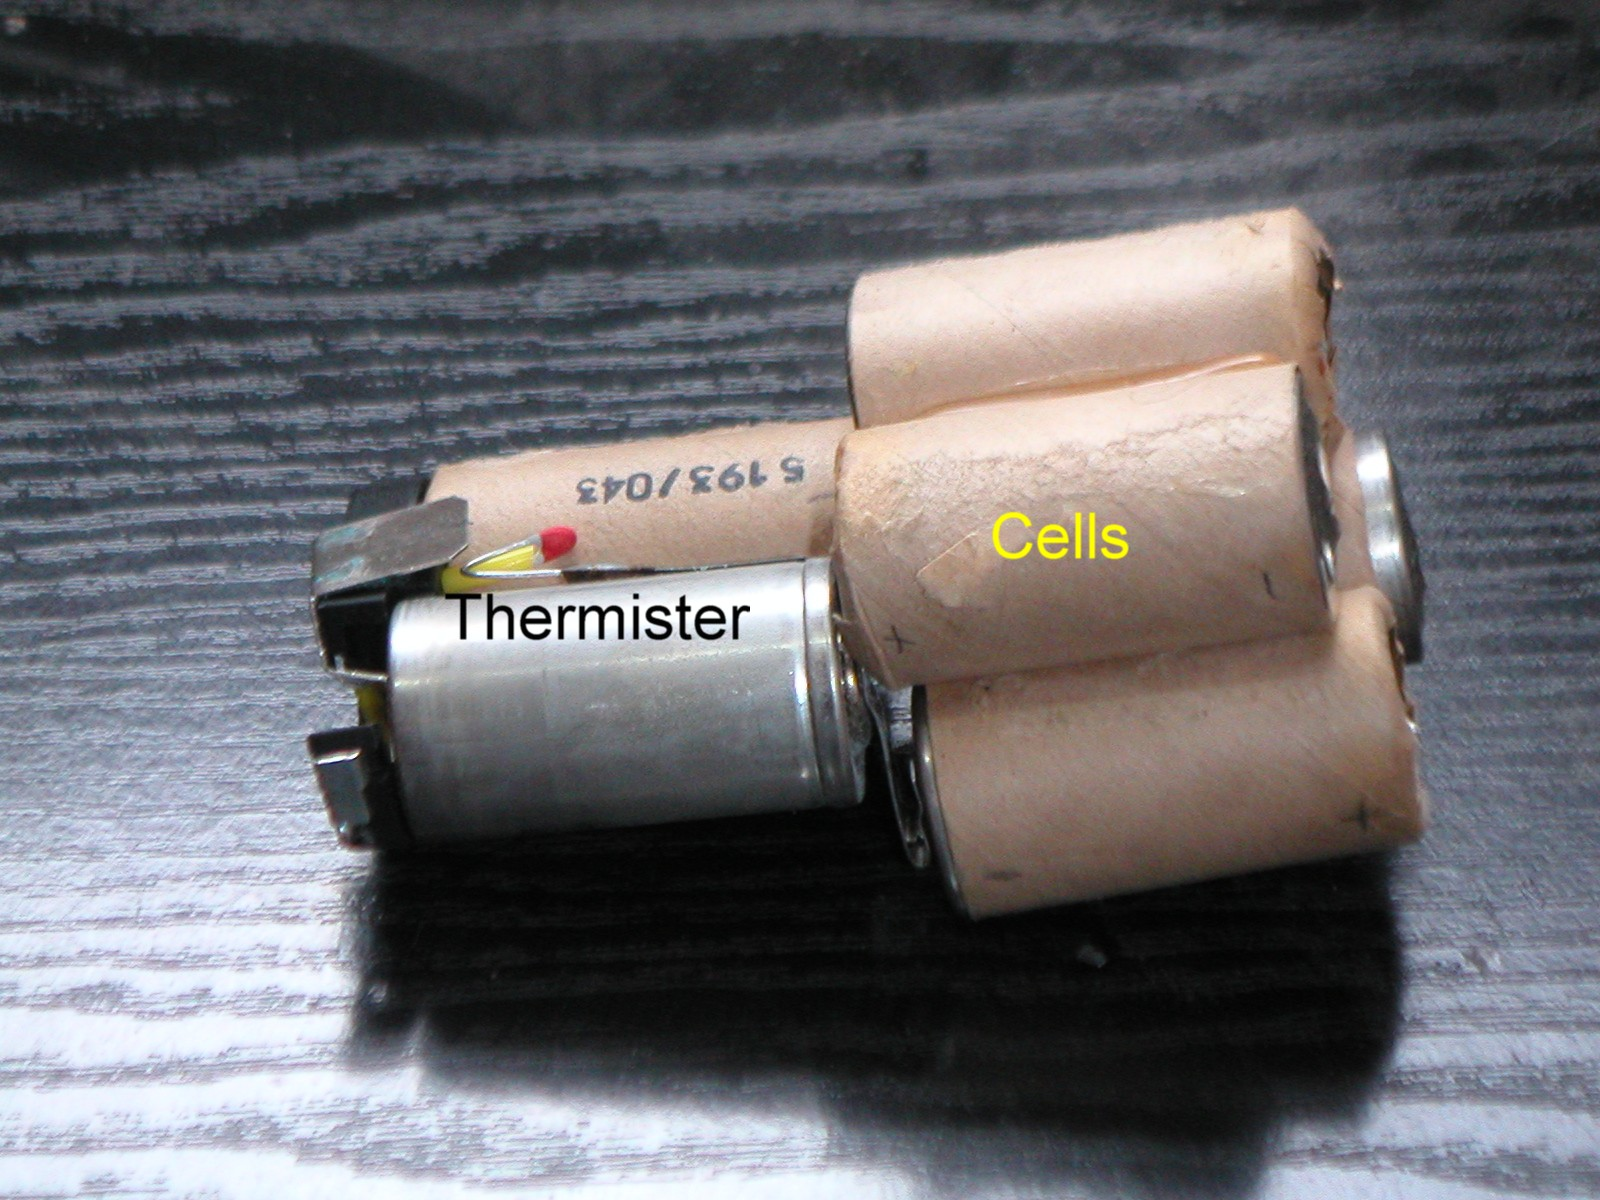 Battery cells removed